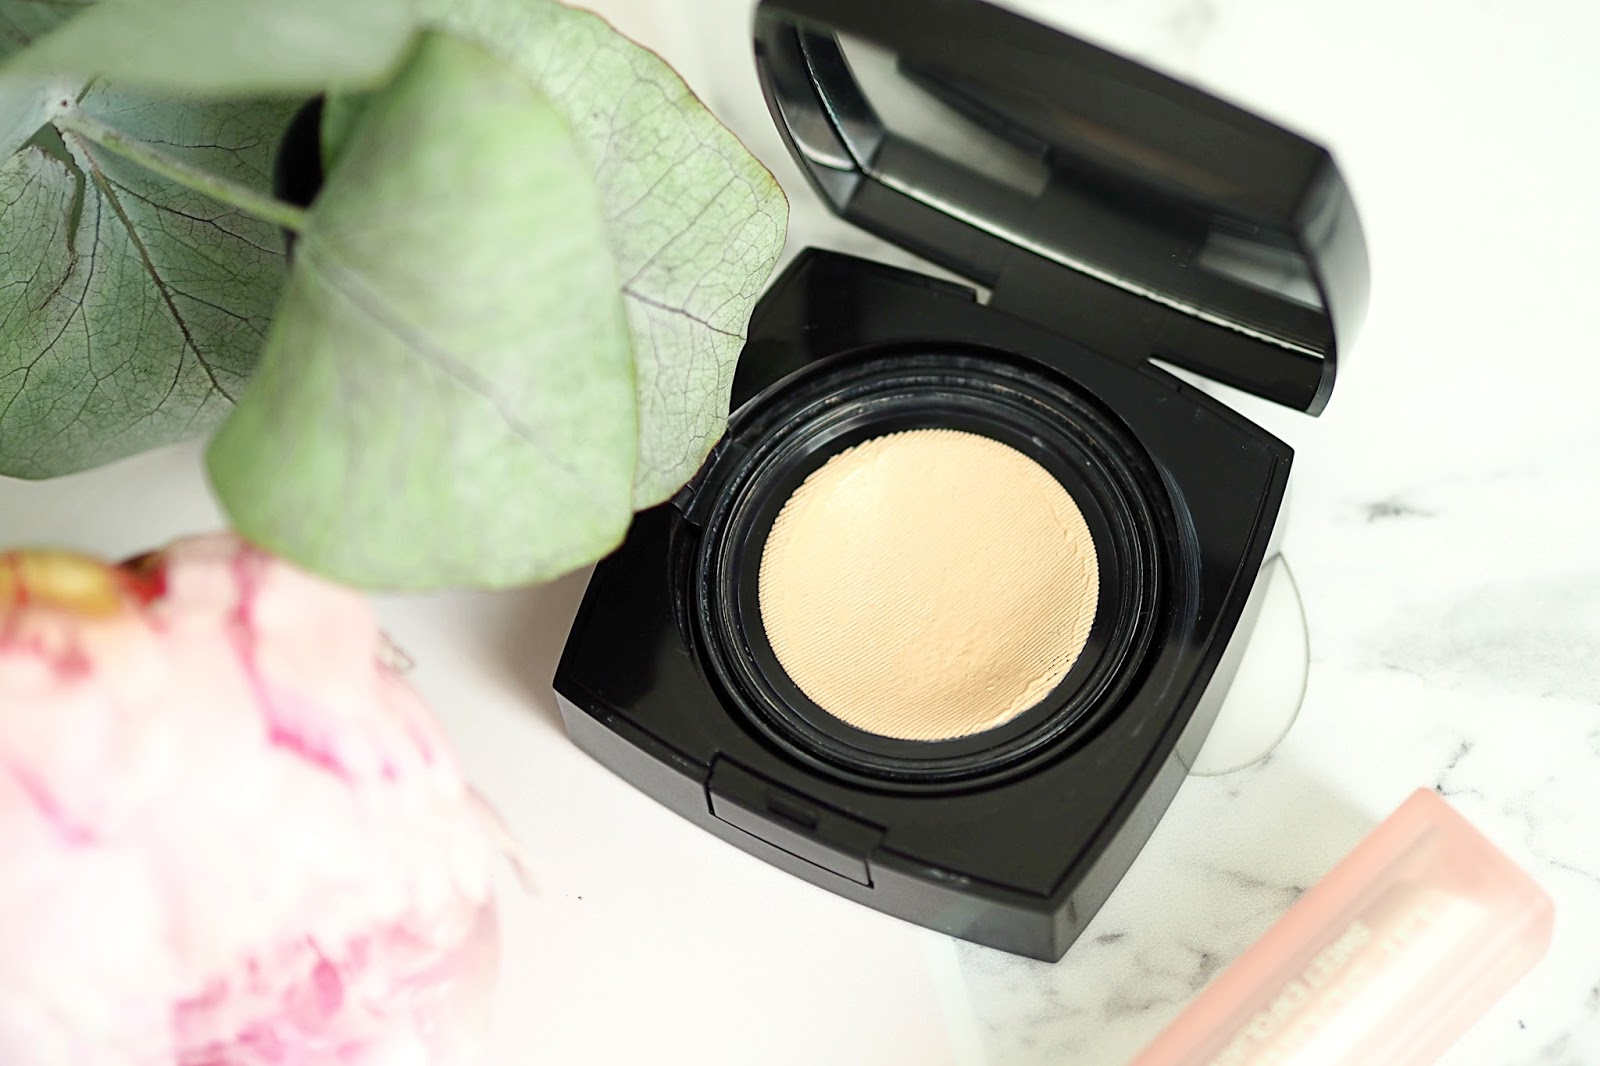 The Chanel Les Beiges Healthy Glow Gel Touch Foundation